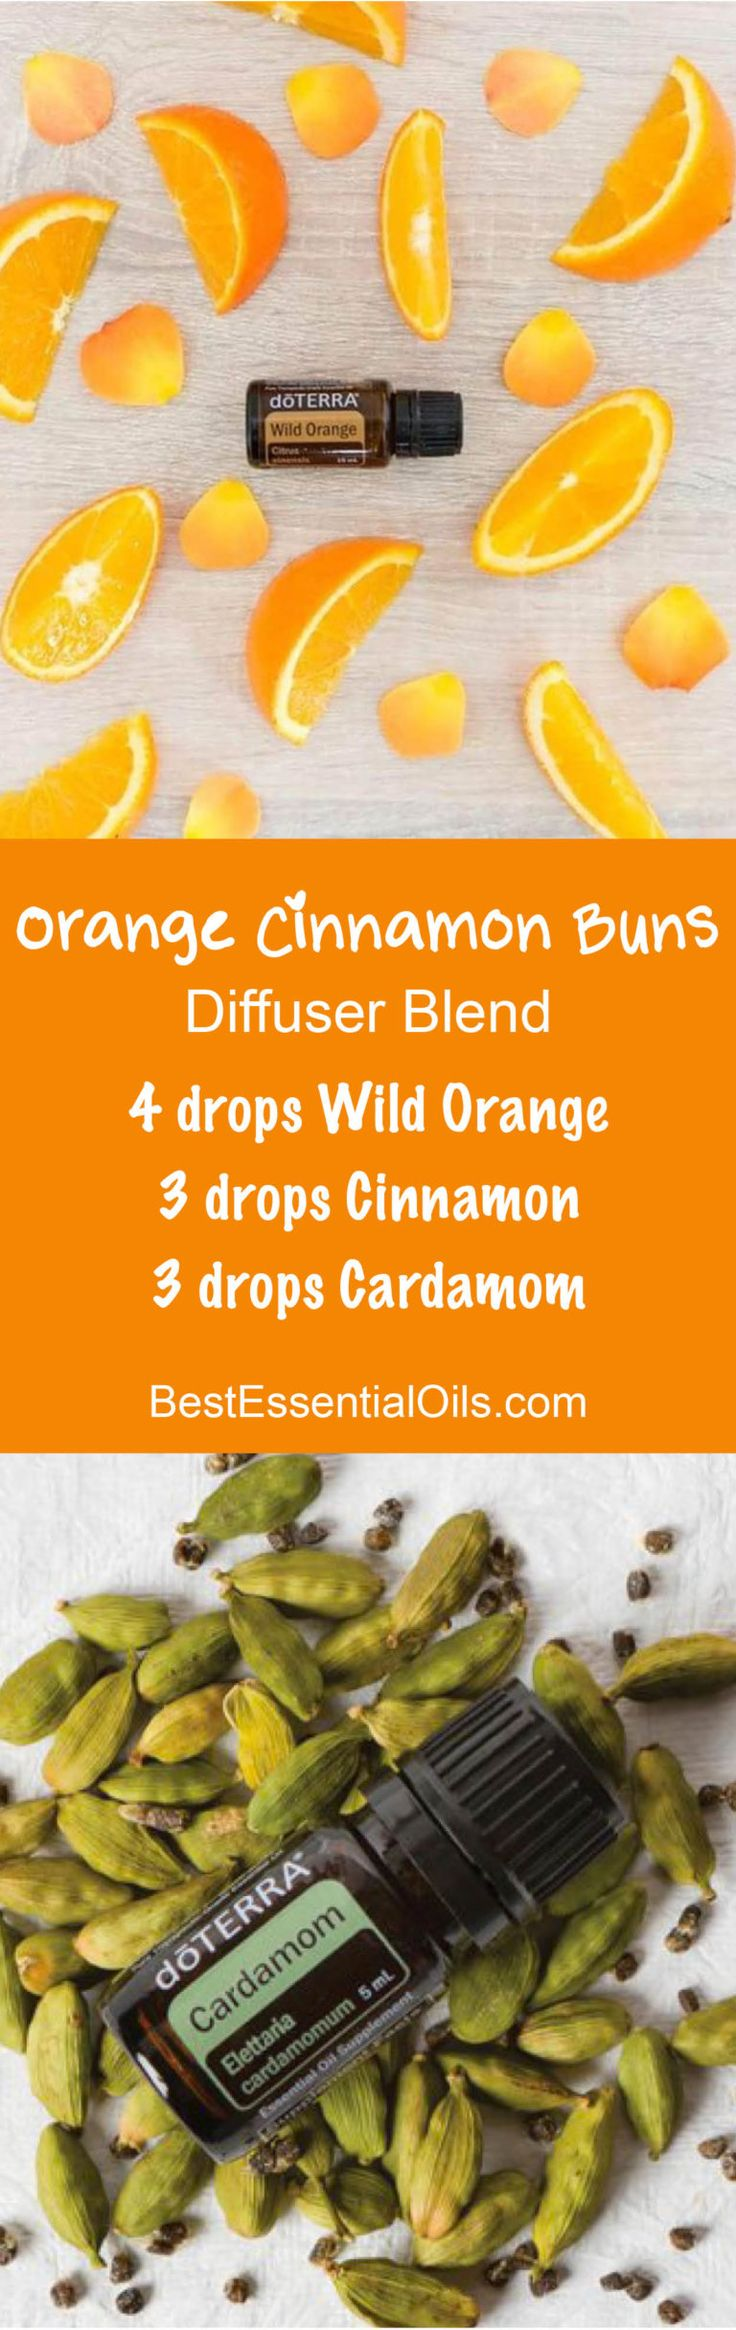 Orange Cinnamon Buns doTERRA Diffuser Blend